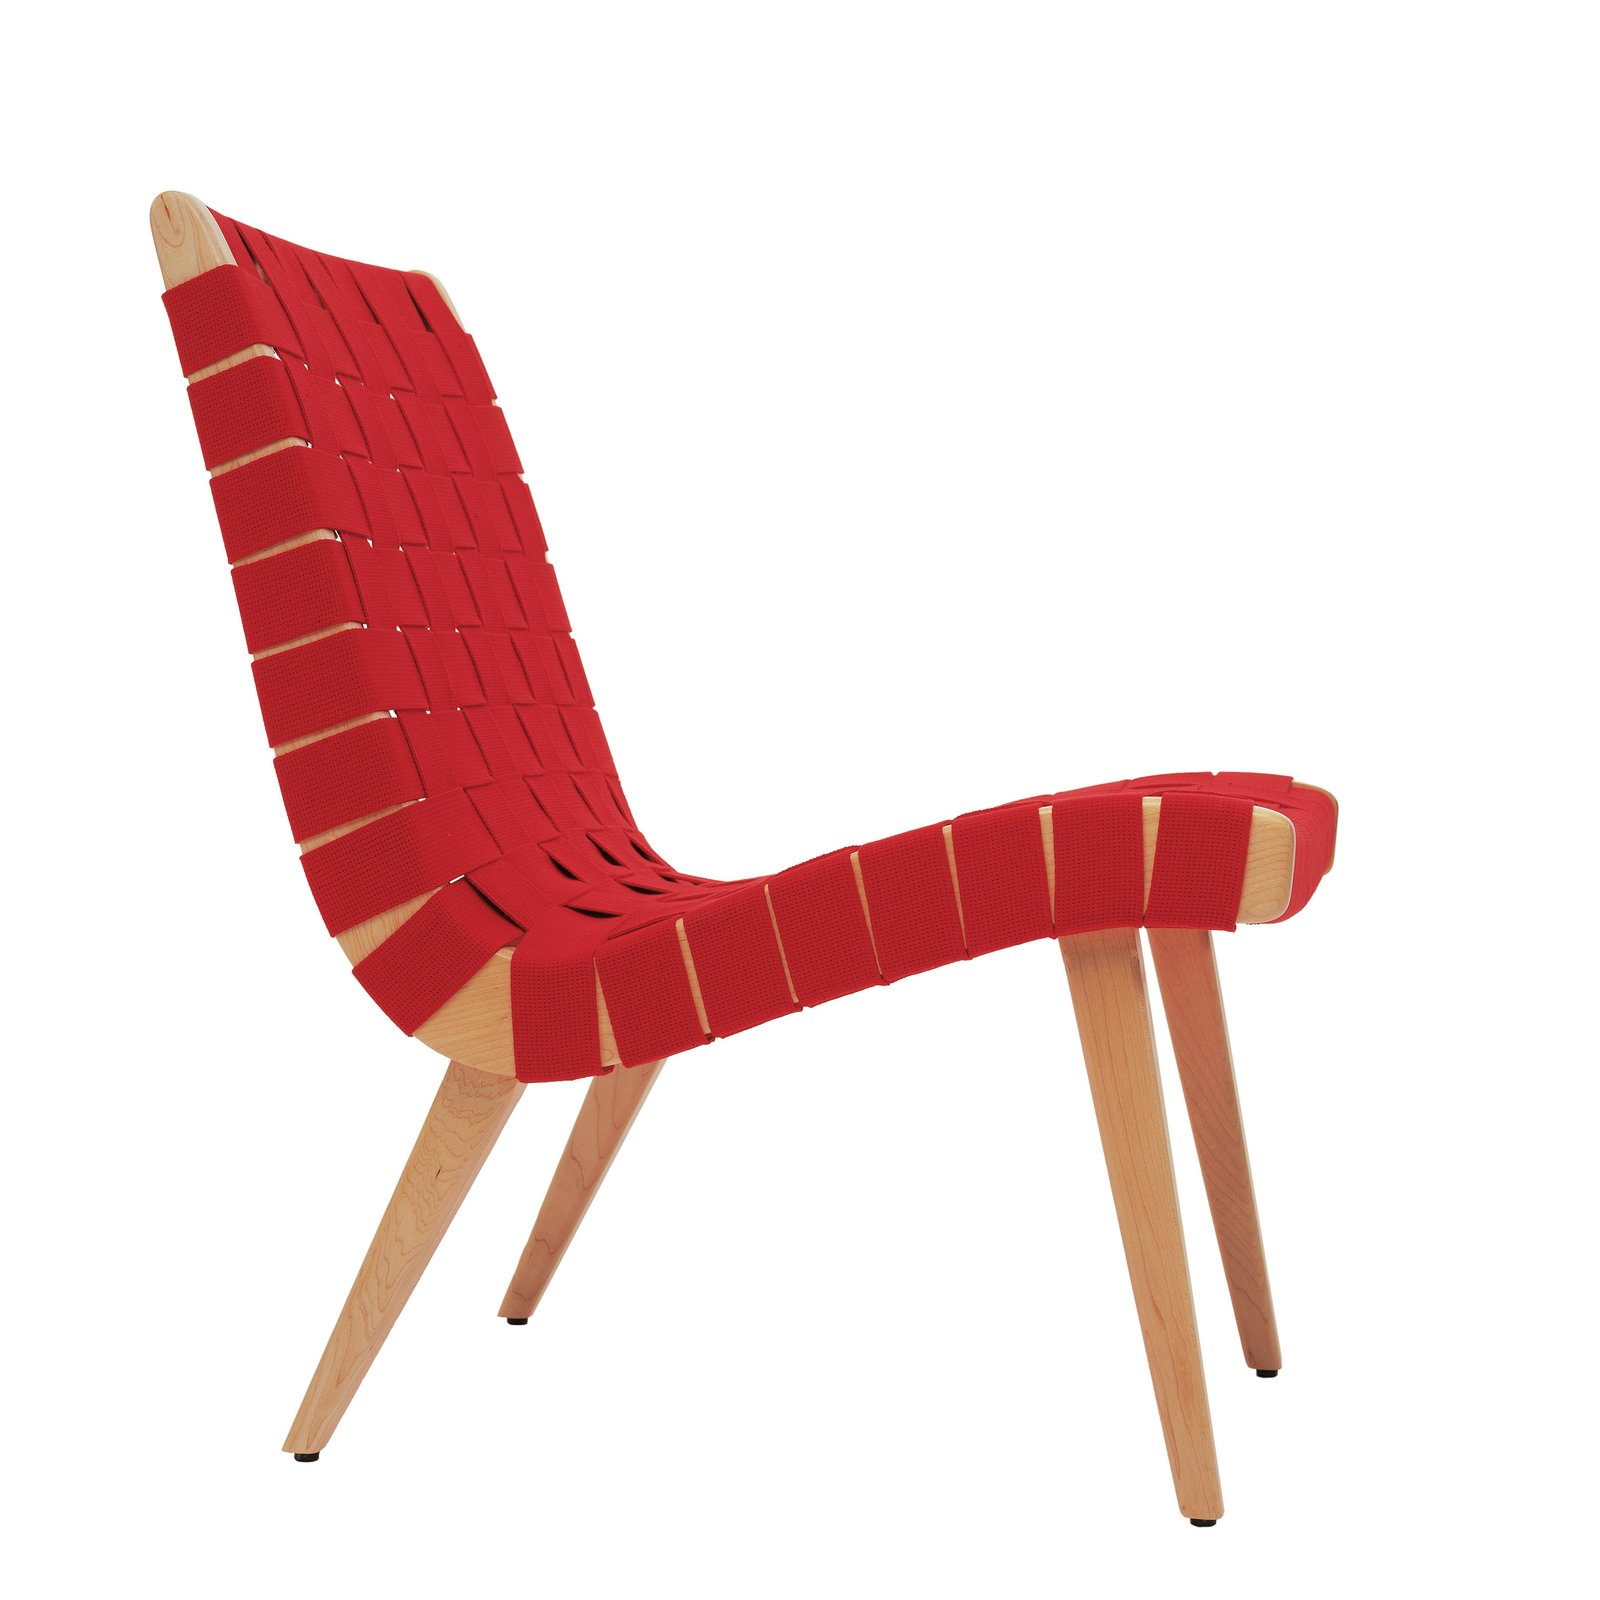 The lounge chair Risom designed for Knoll in 1943, at the height of wartime rationing, used discarded parachute straps for its webbing. When Knoll reintroduced it in 1994, Risom gave a number of the chairs to family members  Photo 2 of 3 in Jens Risom's Family Reflects on the Danish Modern Giant at 100